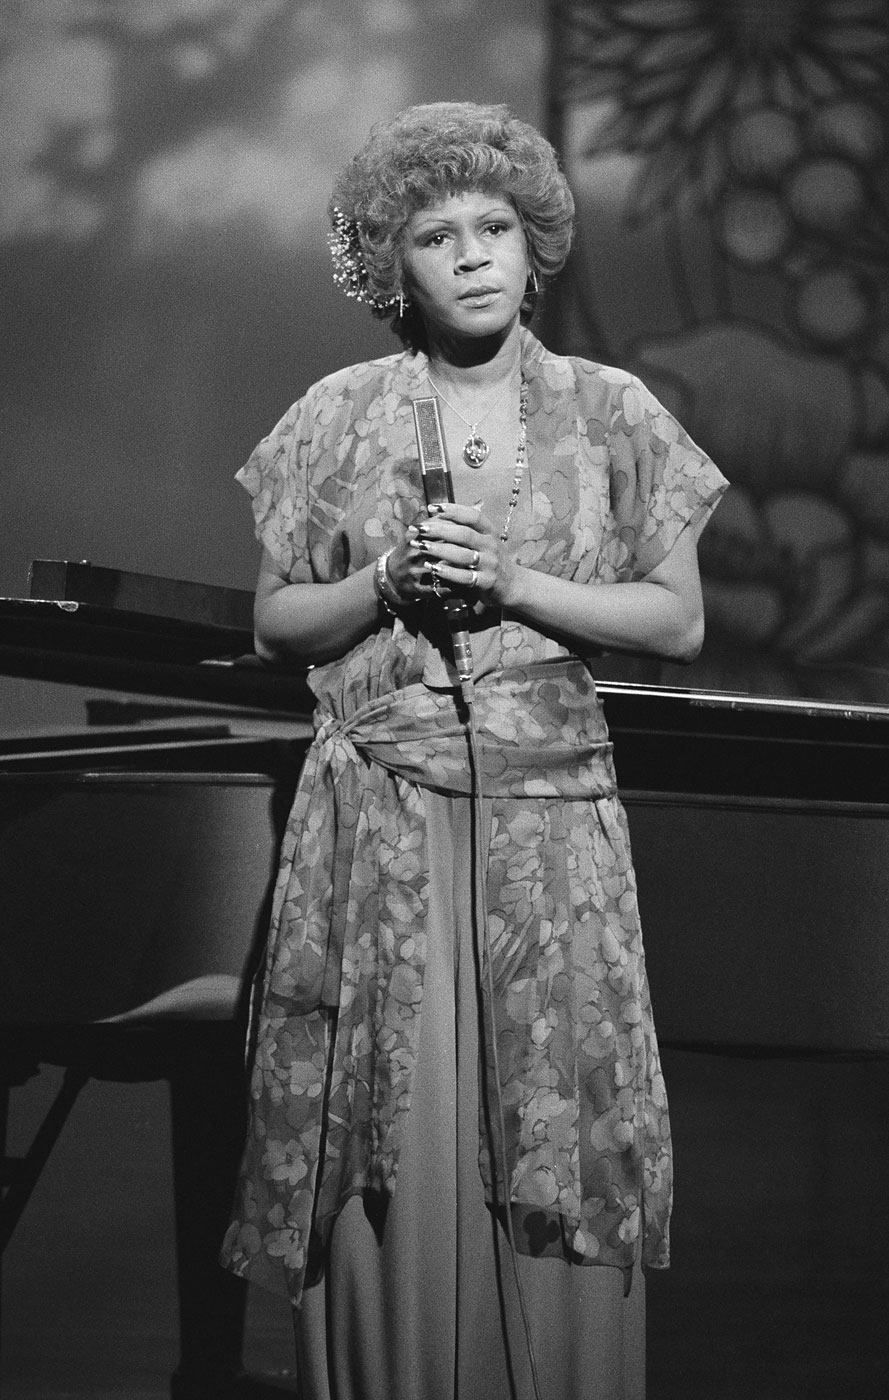 Minnie Riperton                               Musician and American Cancer Society spokesperson                               Diagnosed with breast cancer in 1976; died of the disease at age 31 in 1978